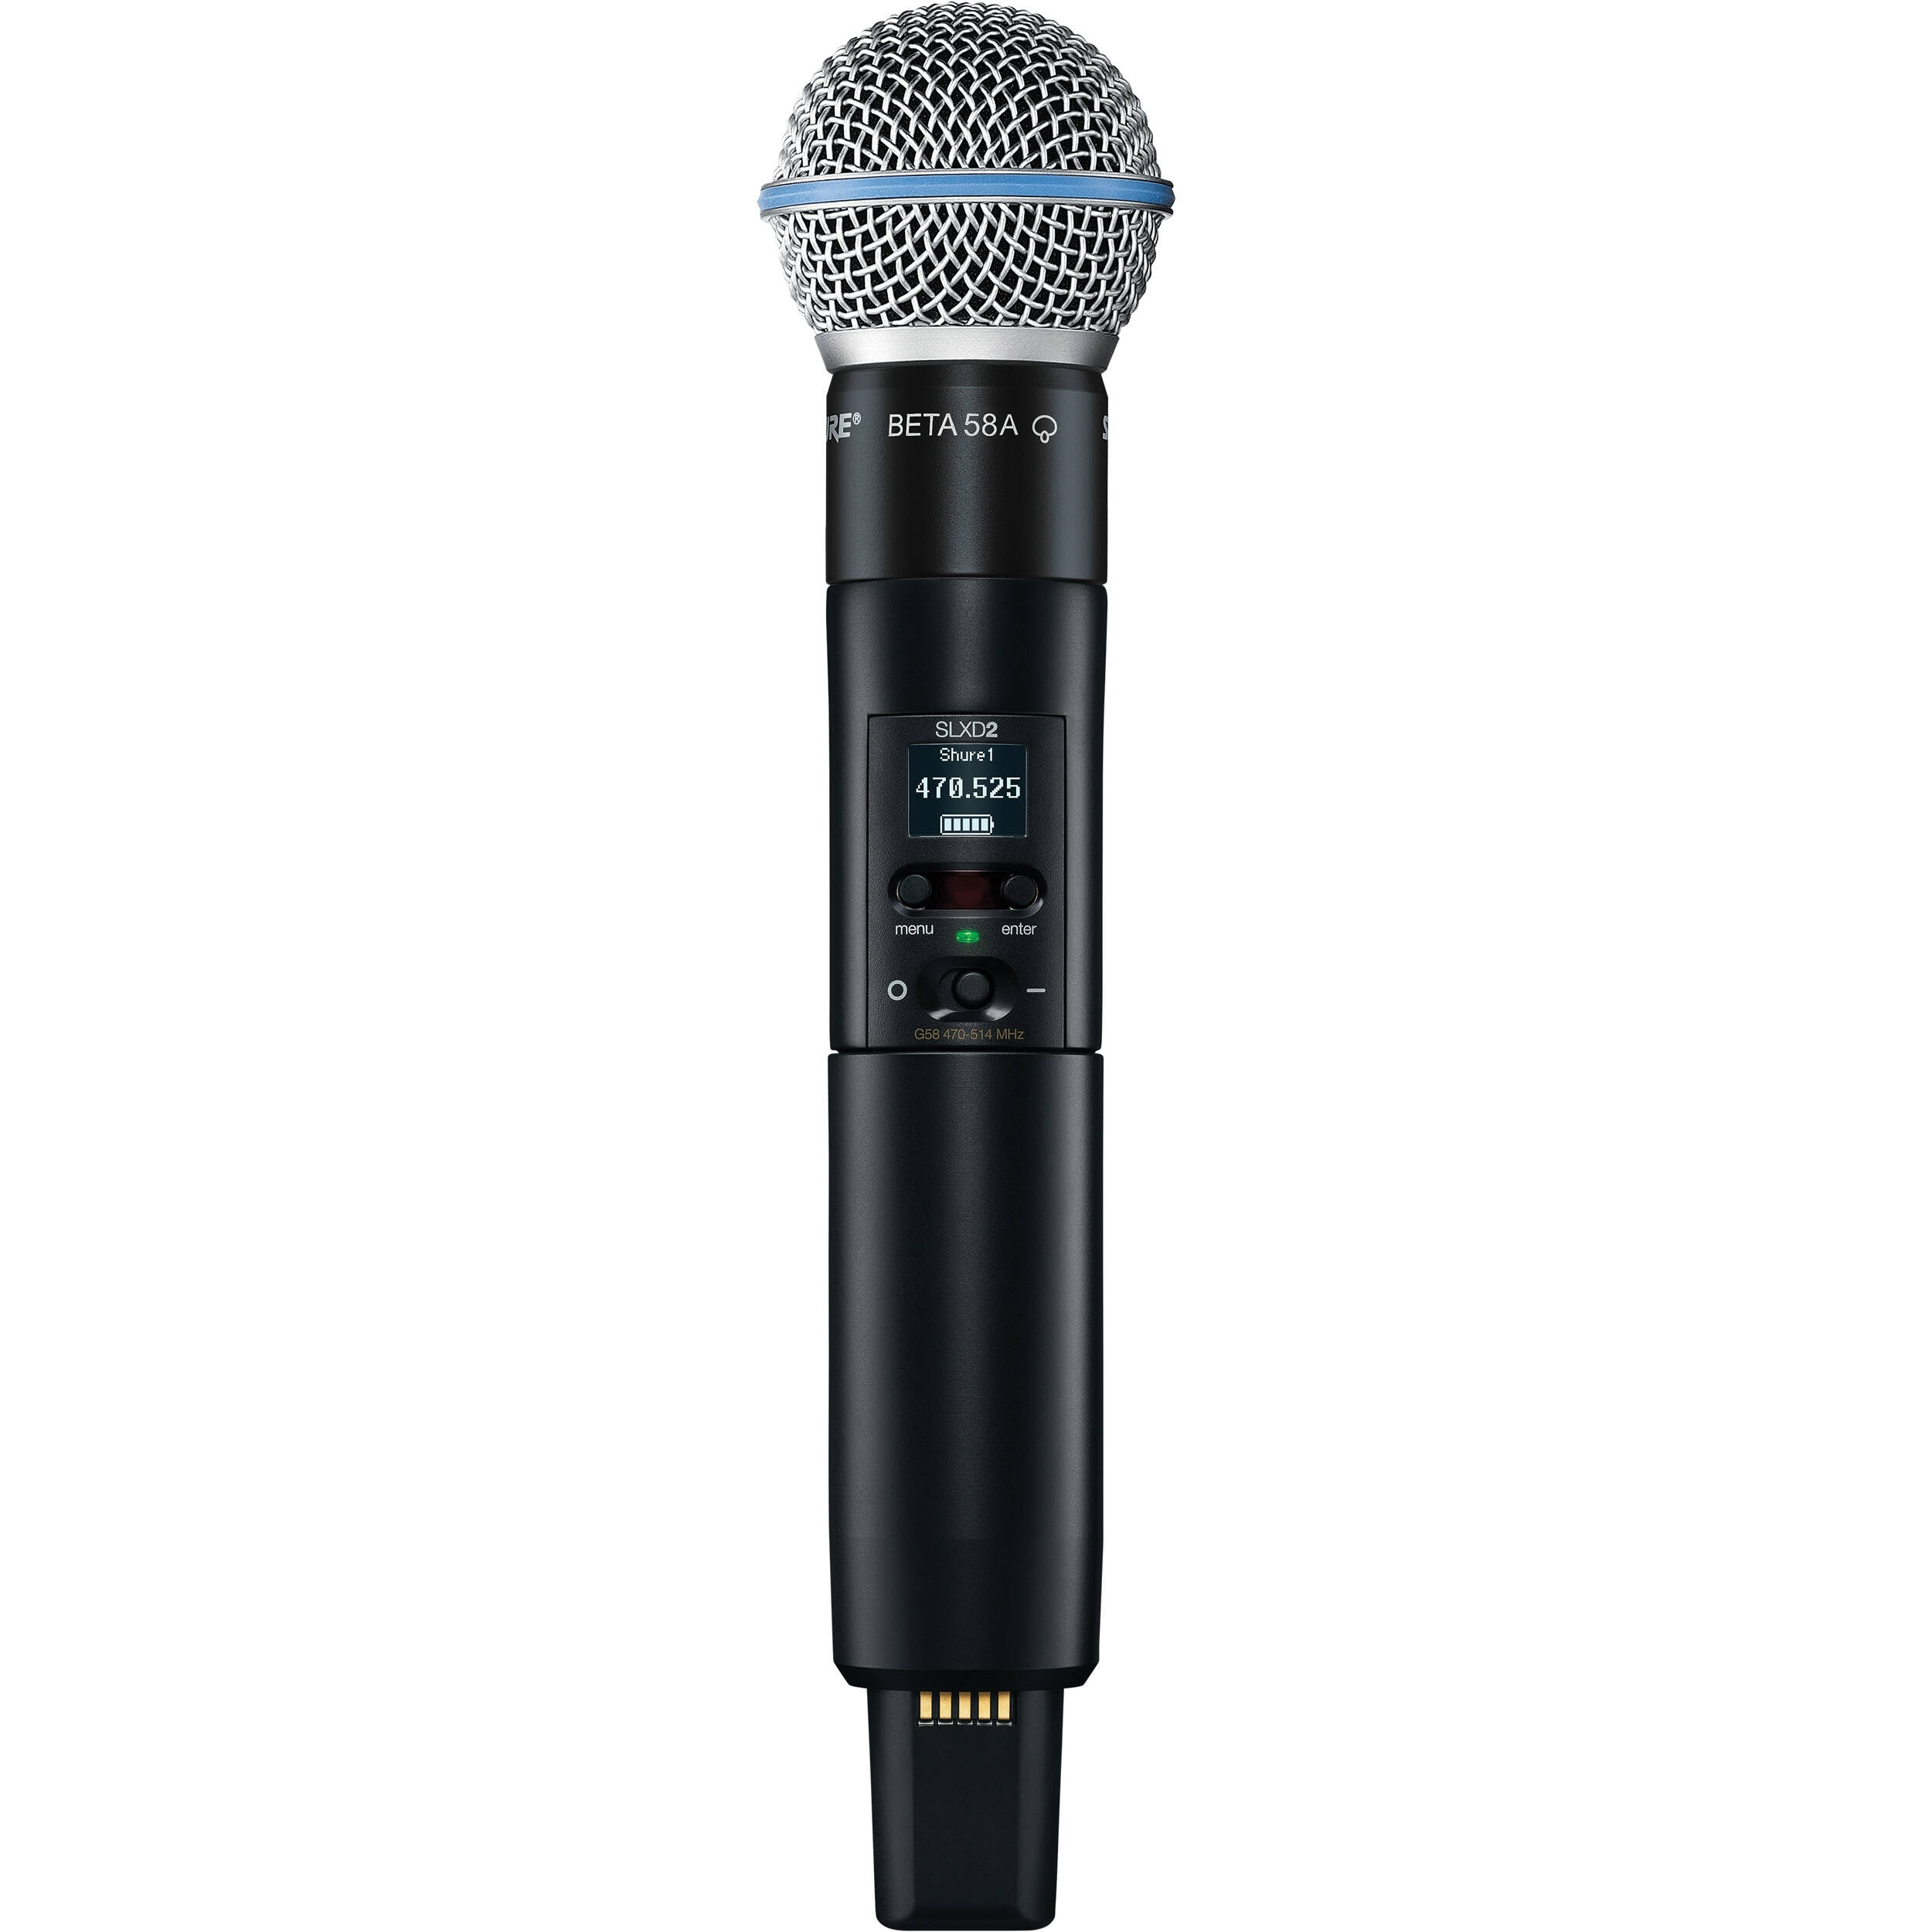 Shure SLXD2/B58 Digital Wireless Handheld Microphone Transmitter with Beta 58 Capsule